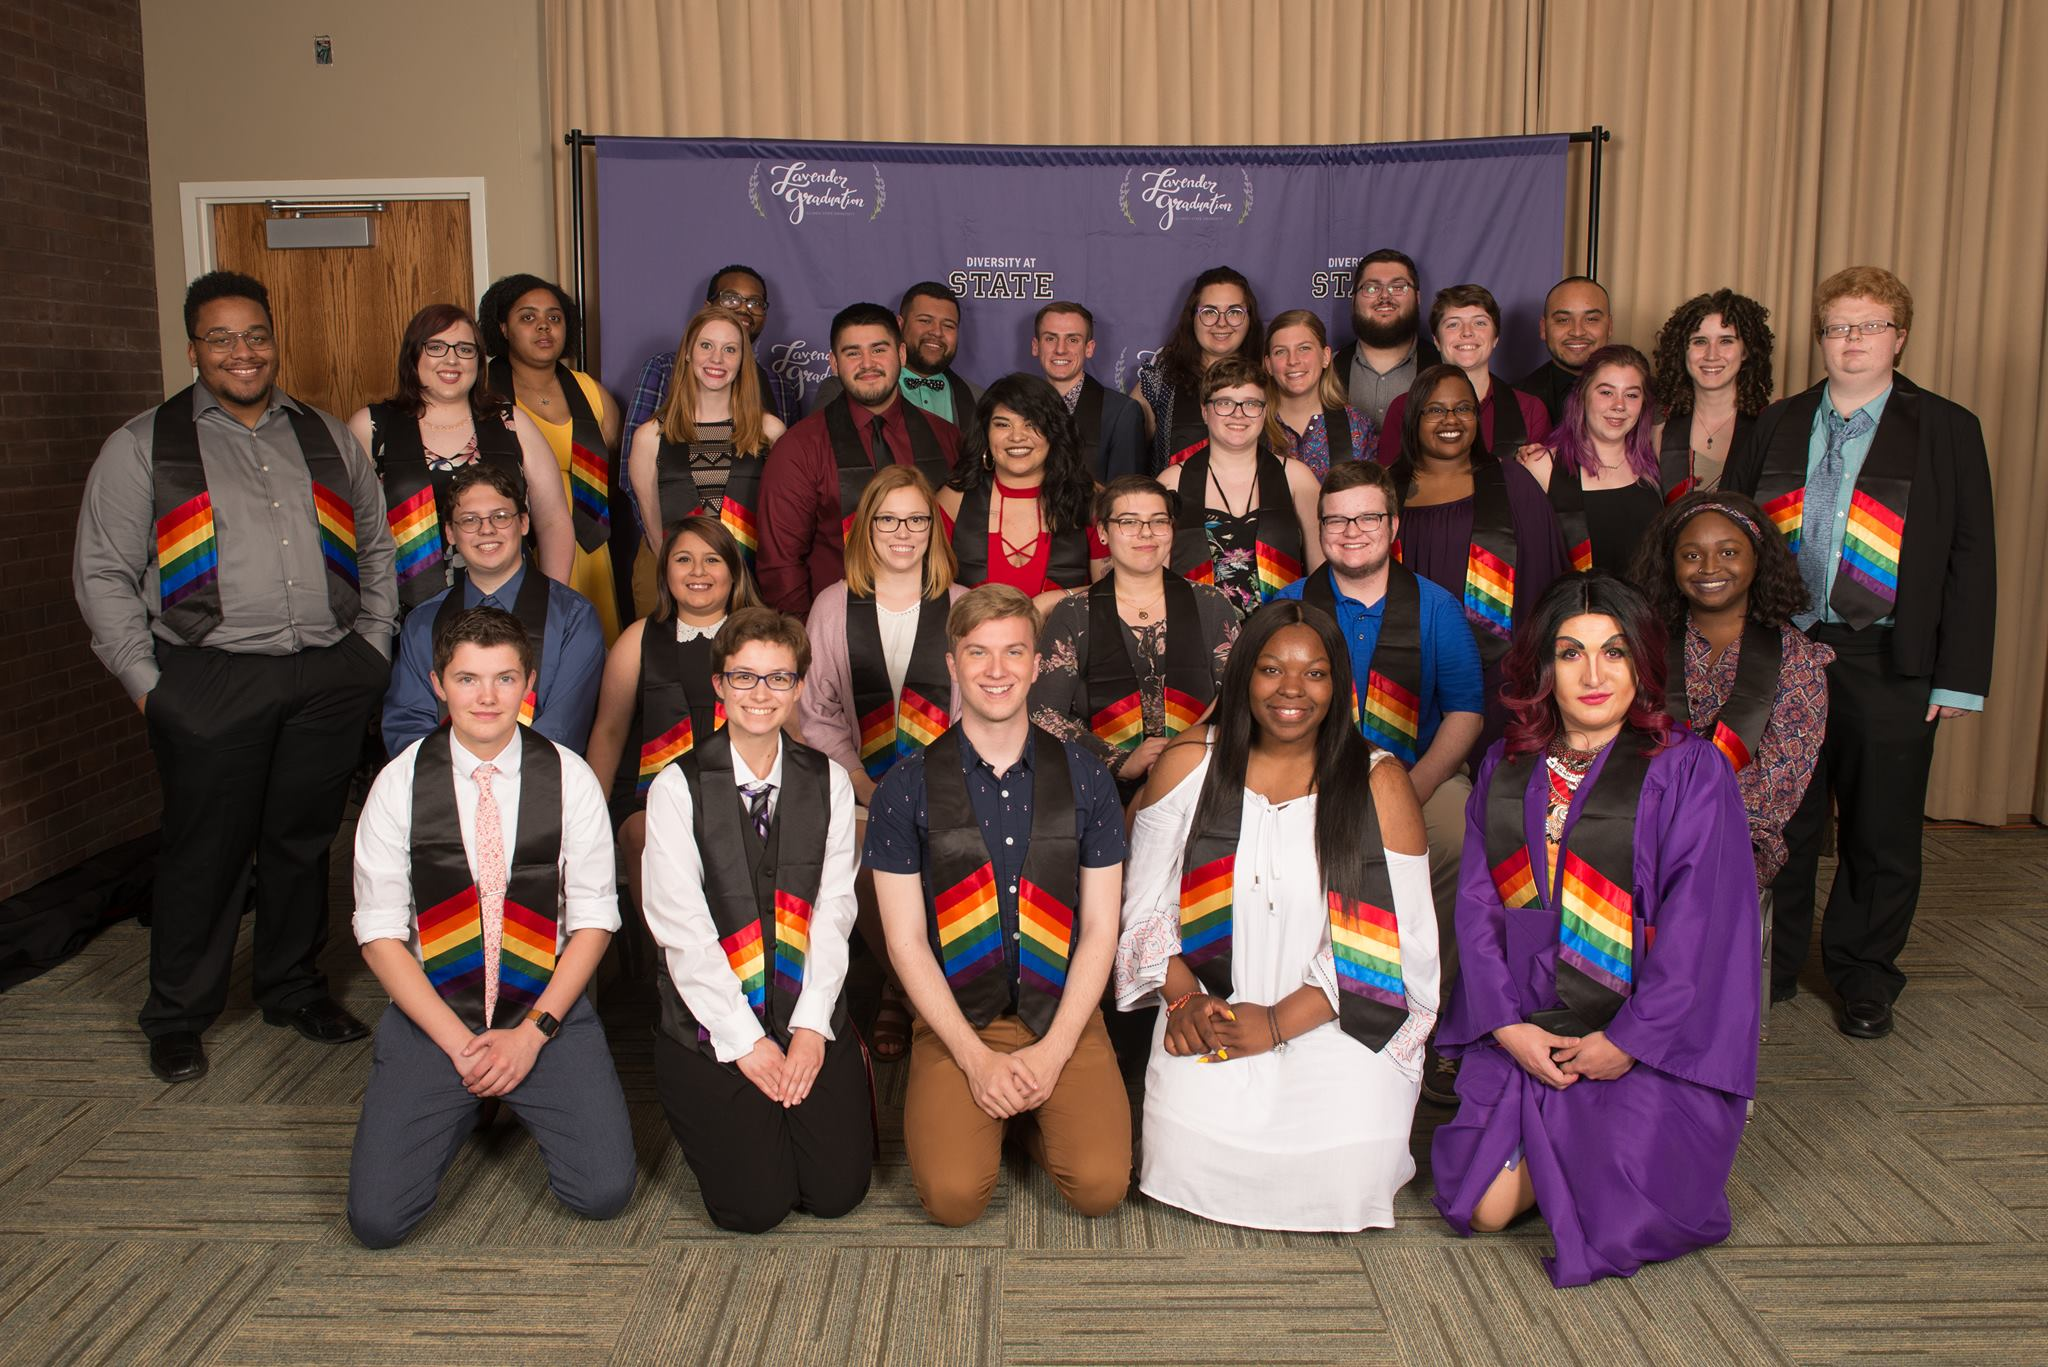 students smiling and wearing drapes with a rainbow design